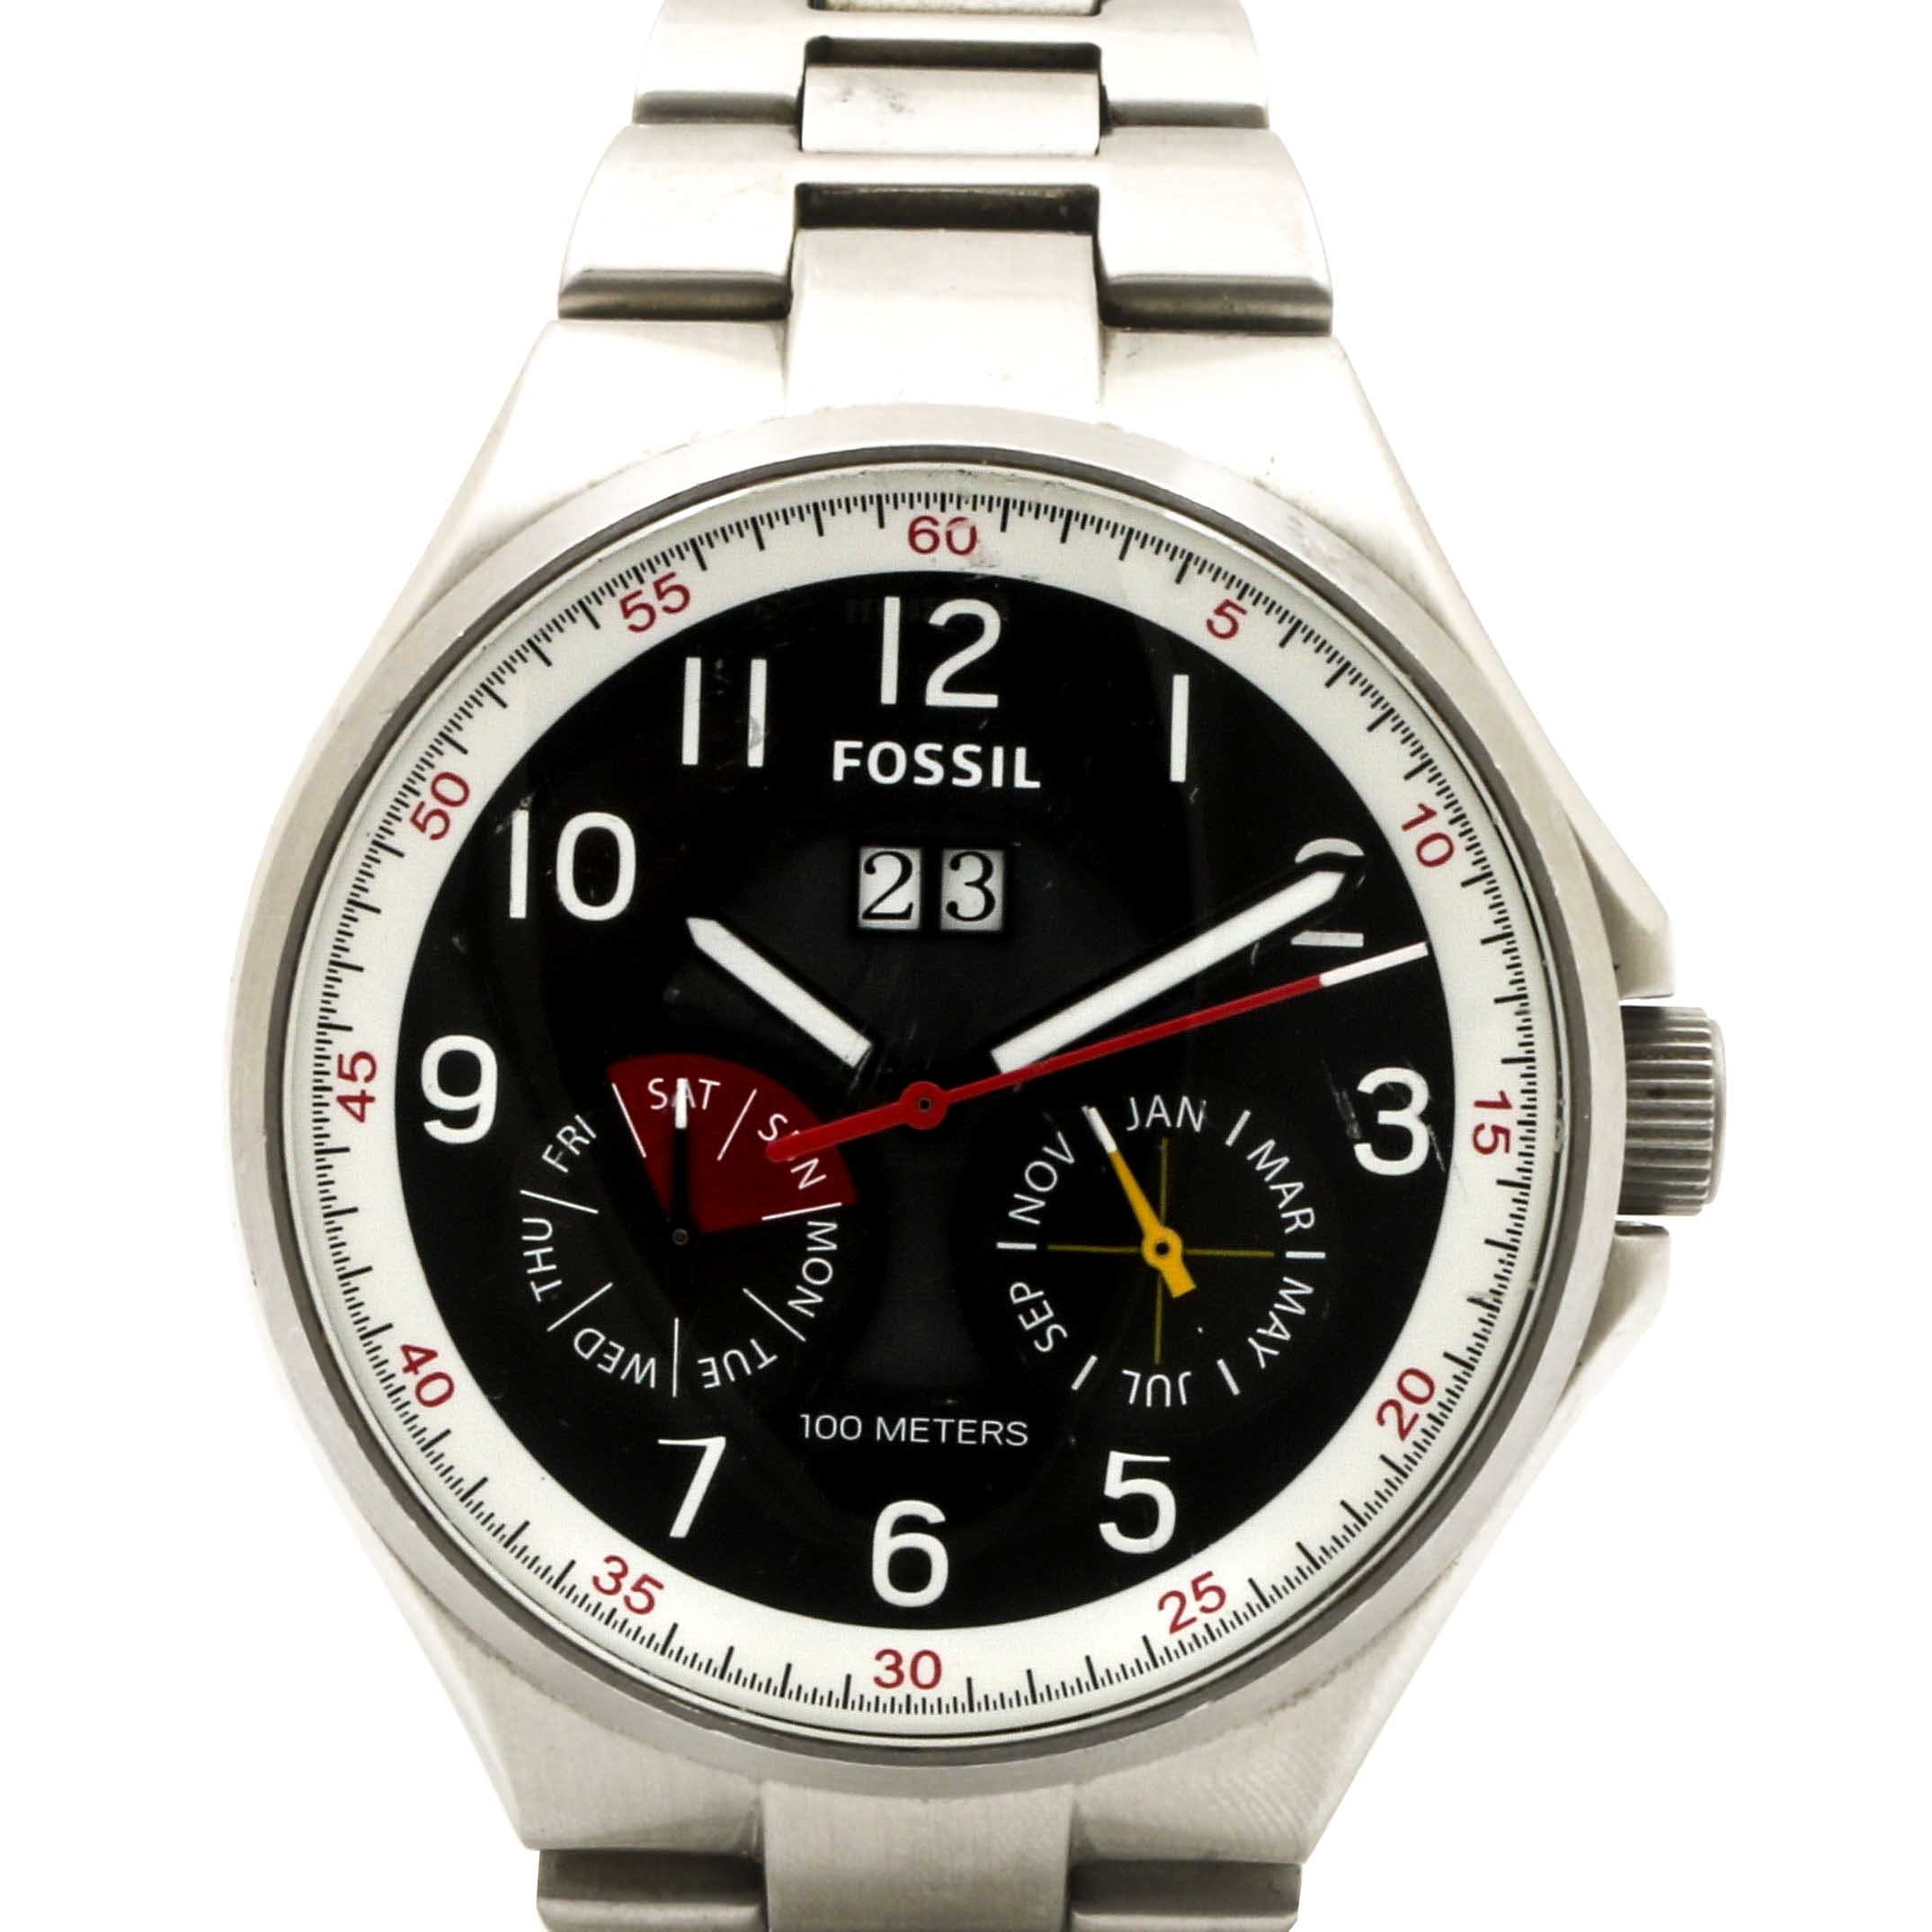 Fossil Stainless Steel Analog Wristwatch